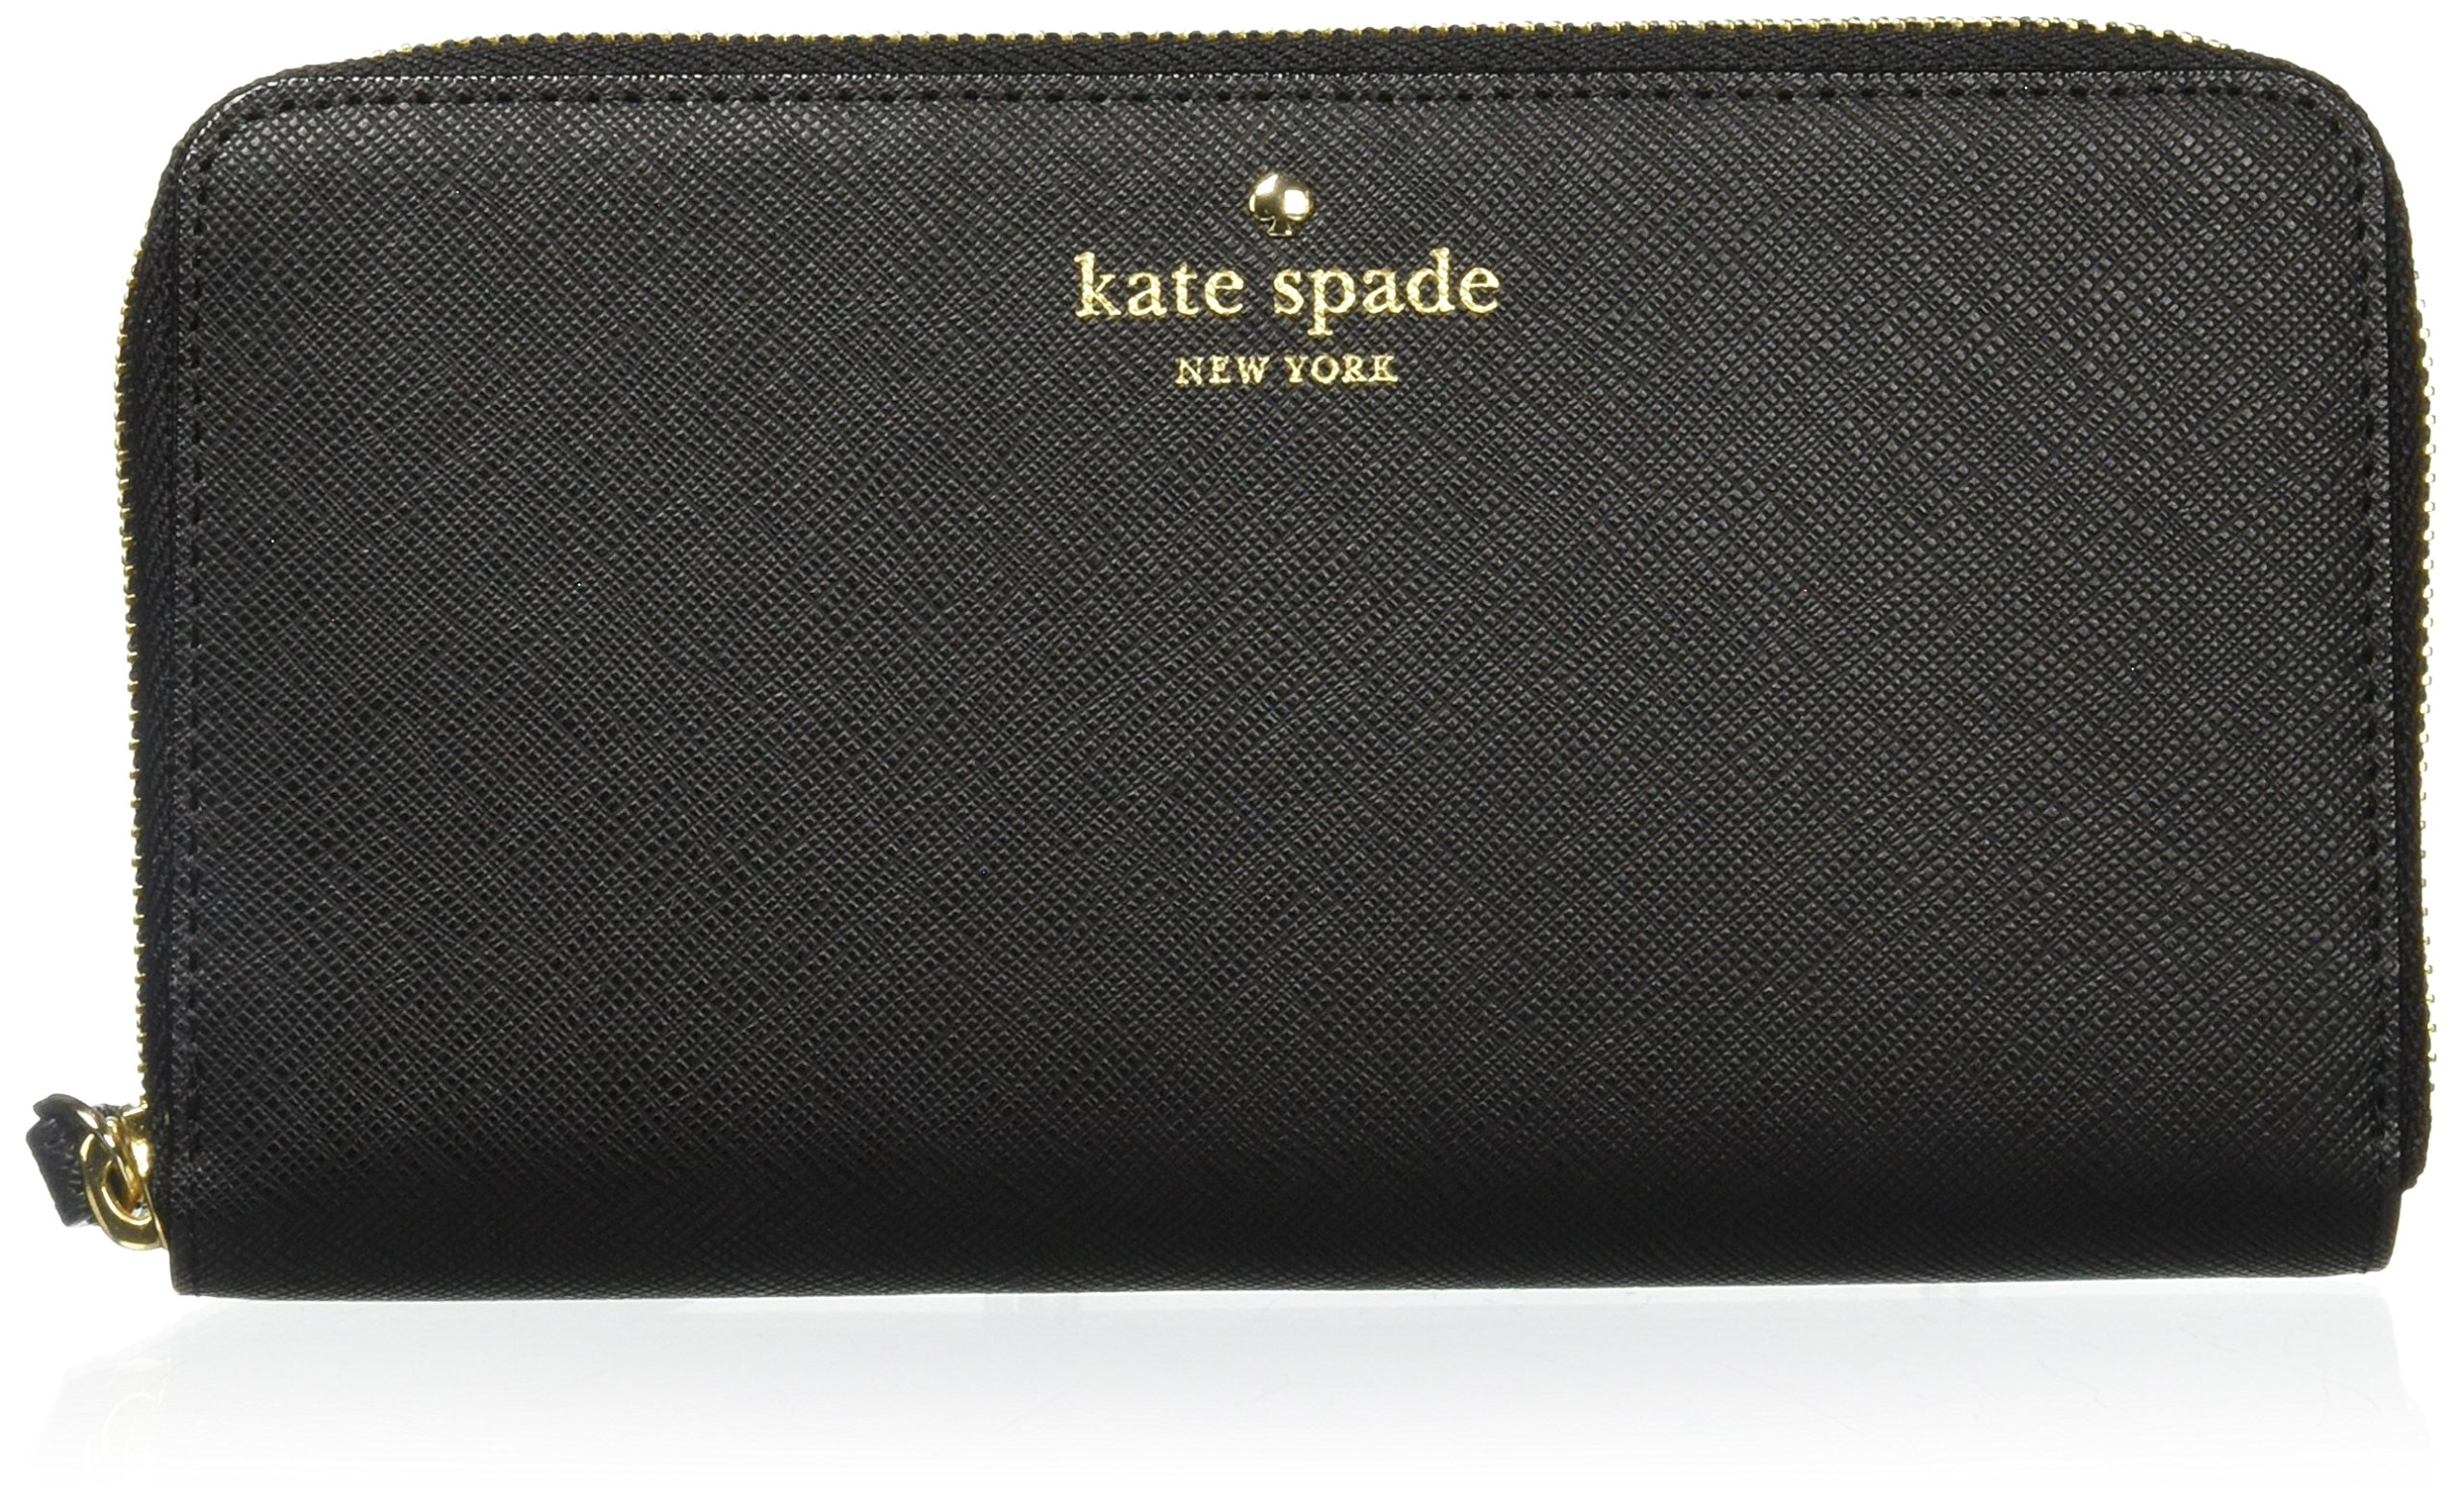 kate spade new york Wallet Case for Universal/Smartphones - Saffiano Black